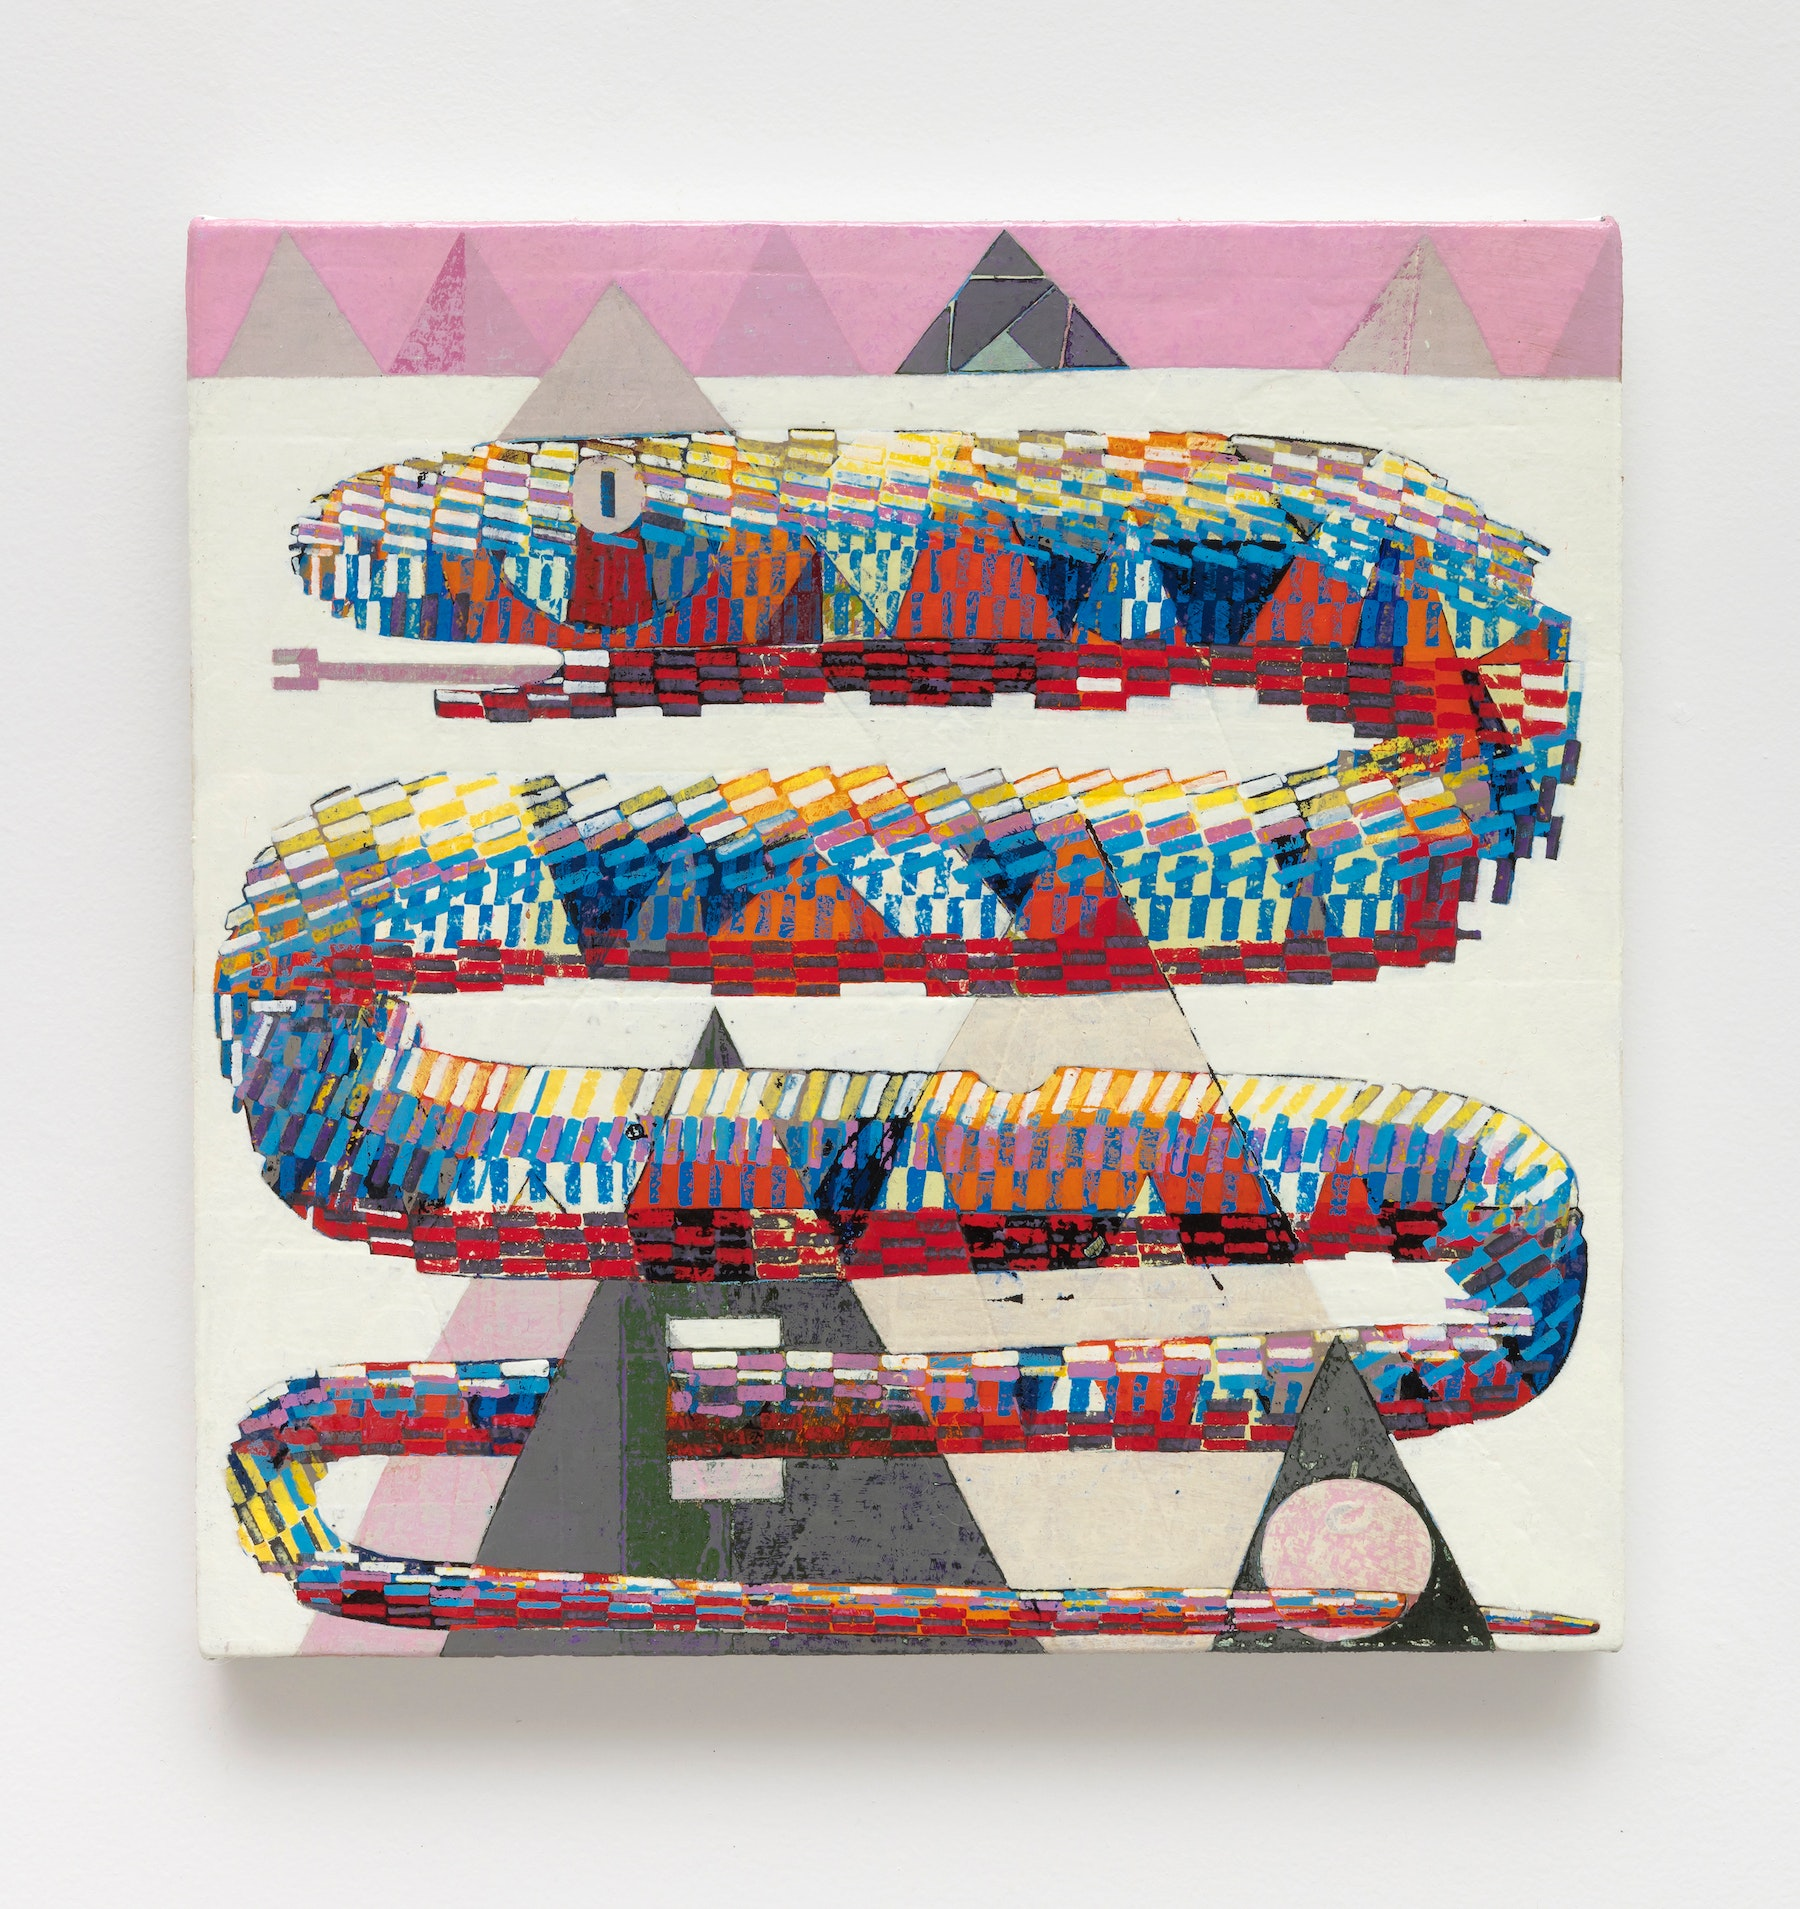 """Brad Eberhard """"Loose Plan for Afterlife,"""" 2020 Oil on canvas over panel 12 x 12"""" [HxW] (30.48 x 30.48 cm) Inventory #EBE163 Courtesy of the artist and Vielmetter Los Angeles Photo credit: Robert Wedemeyer"""